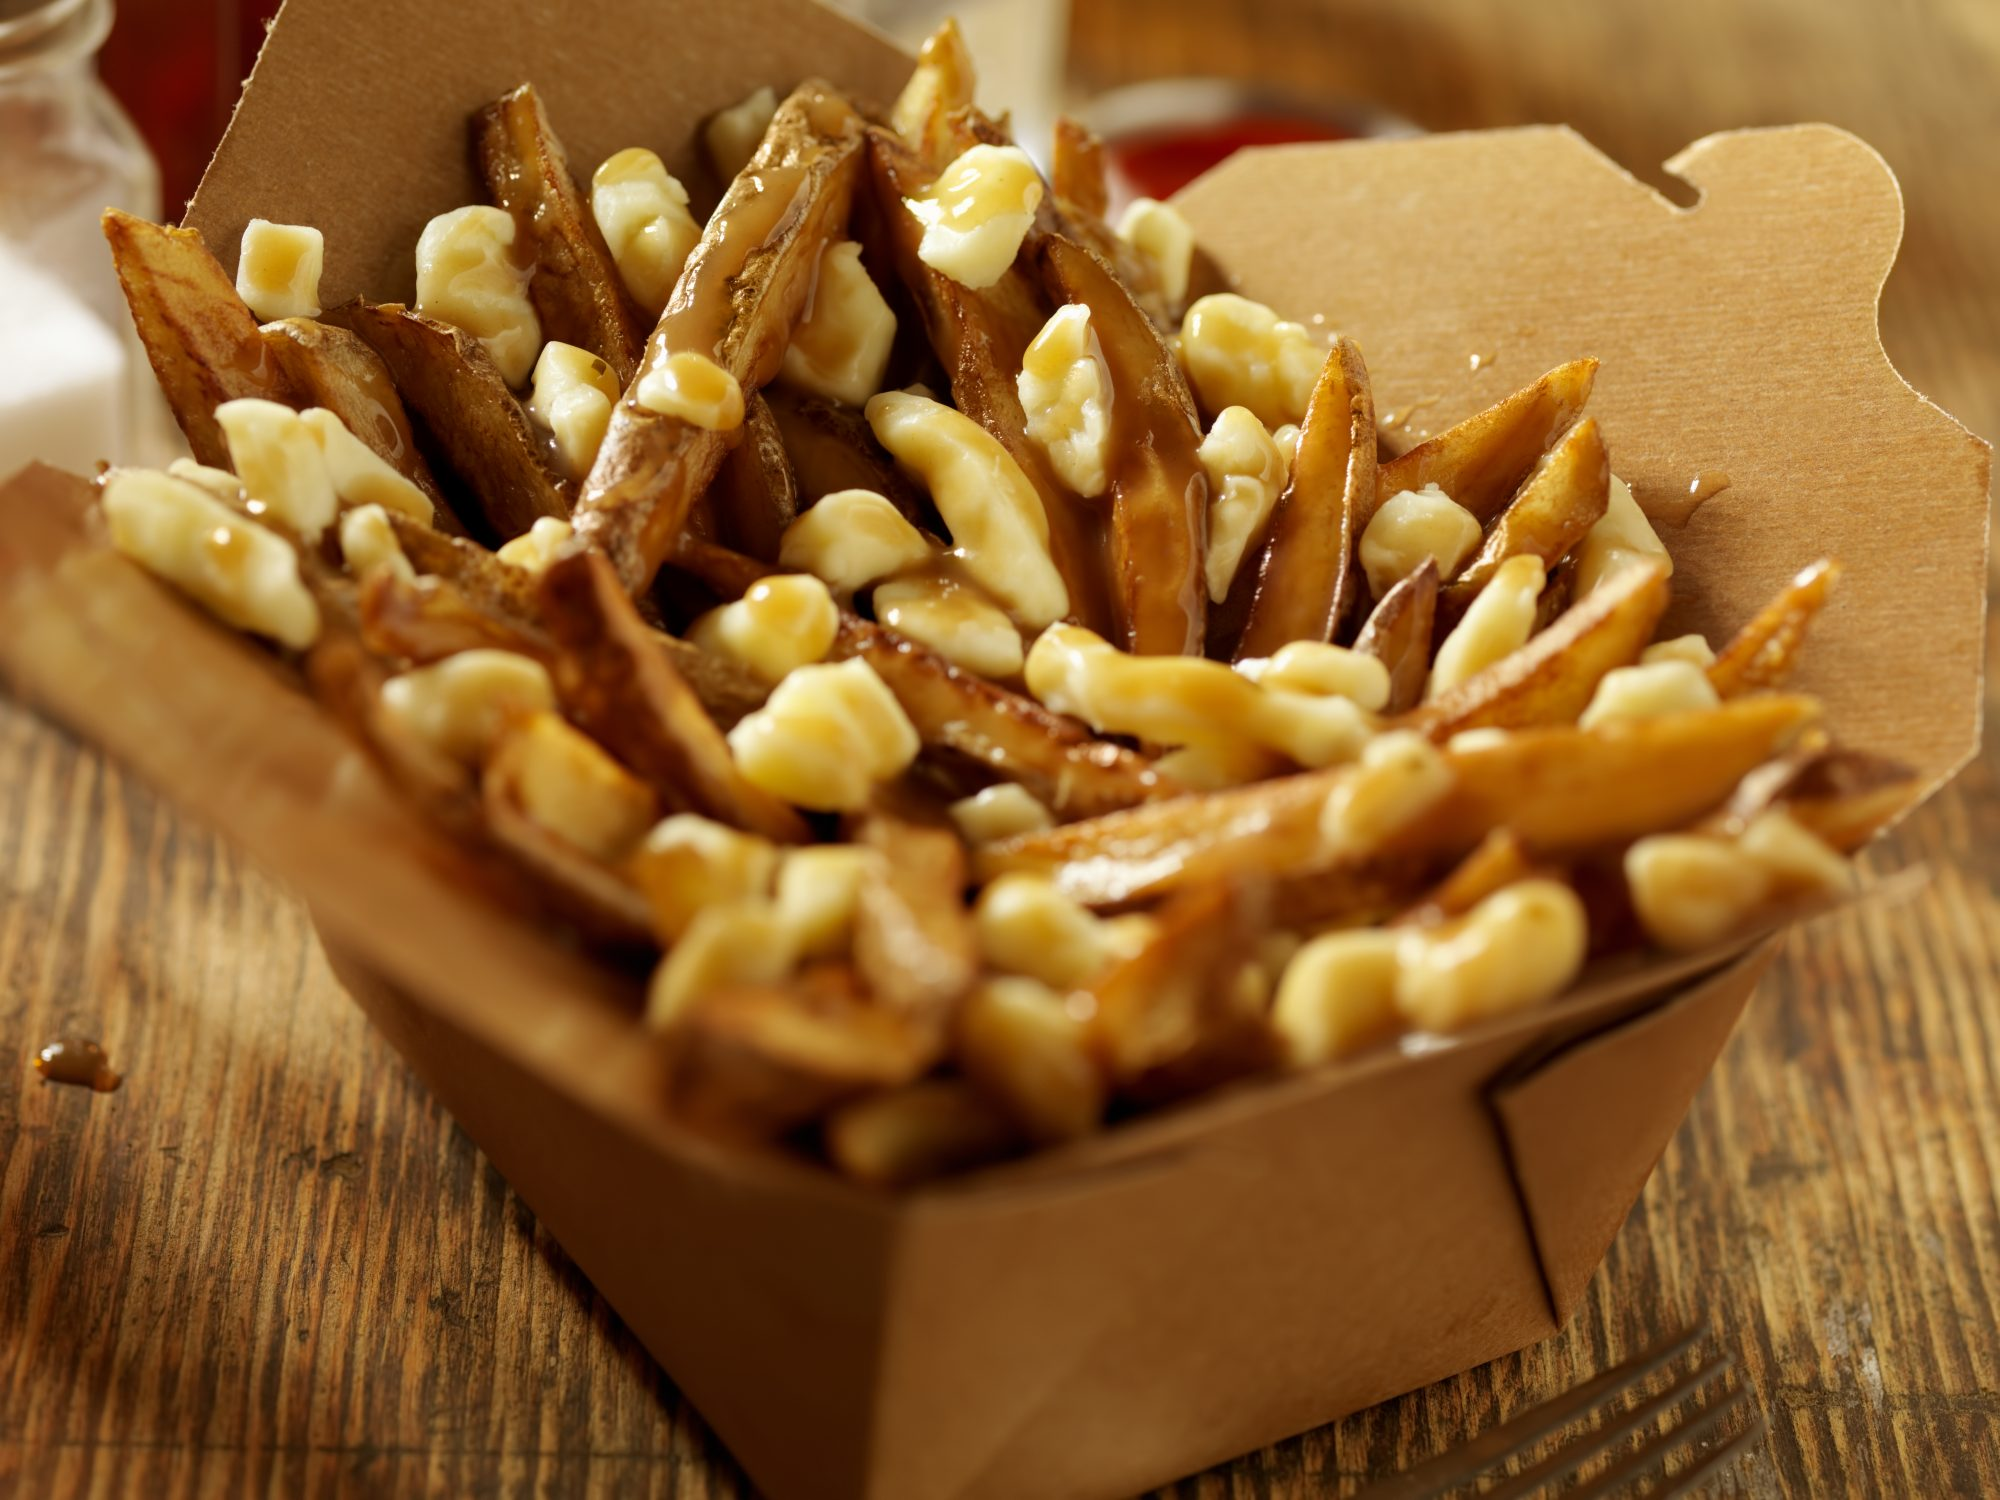 Poutine takeout 7/14/20 Getty